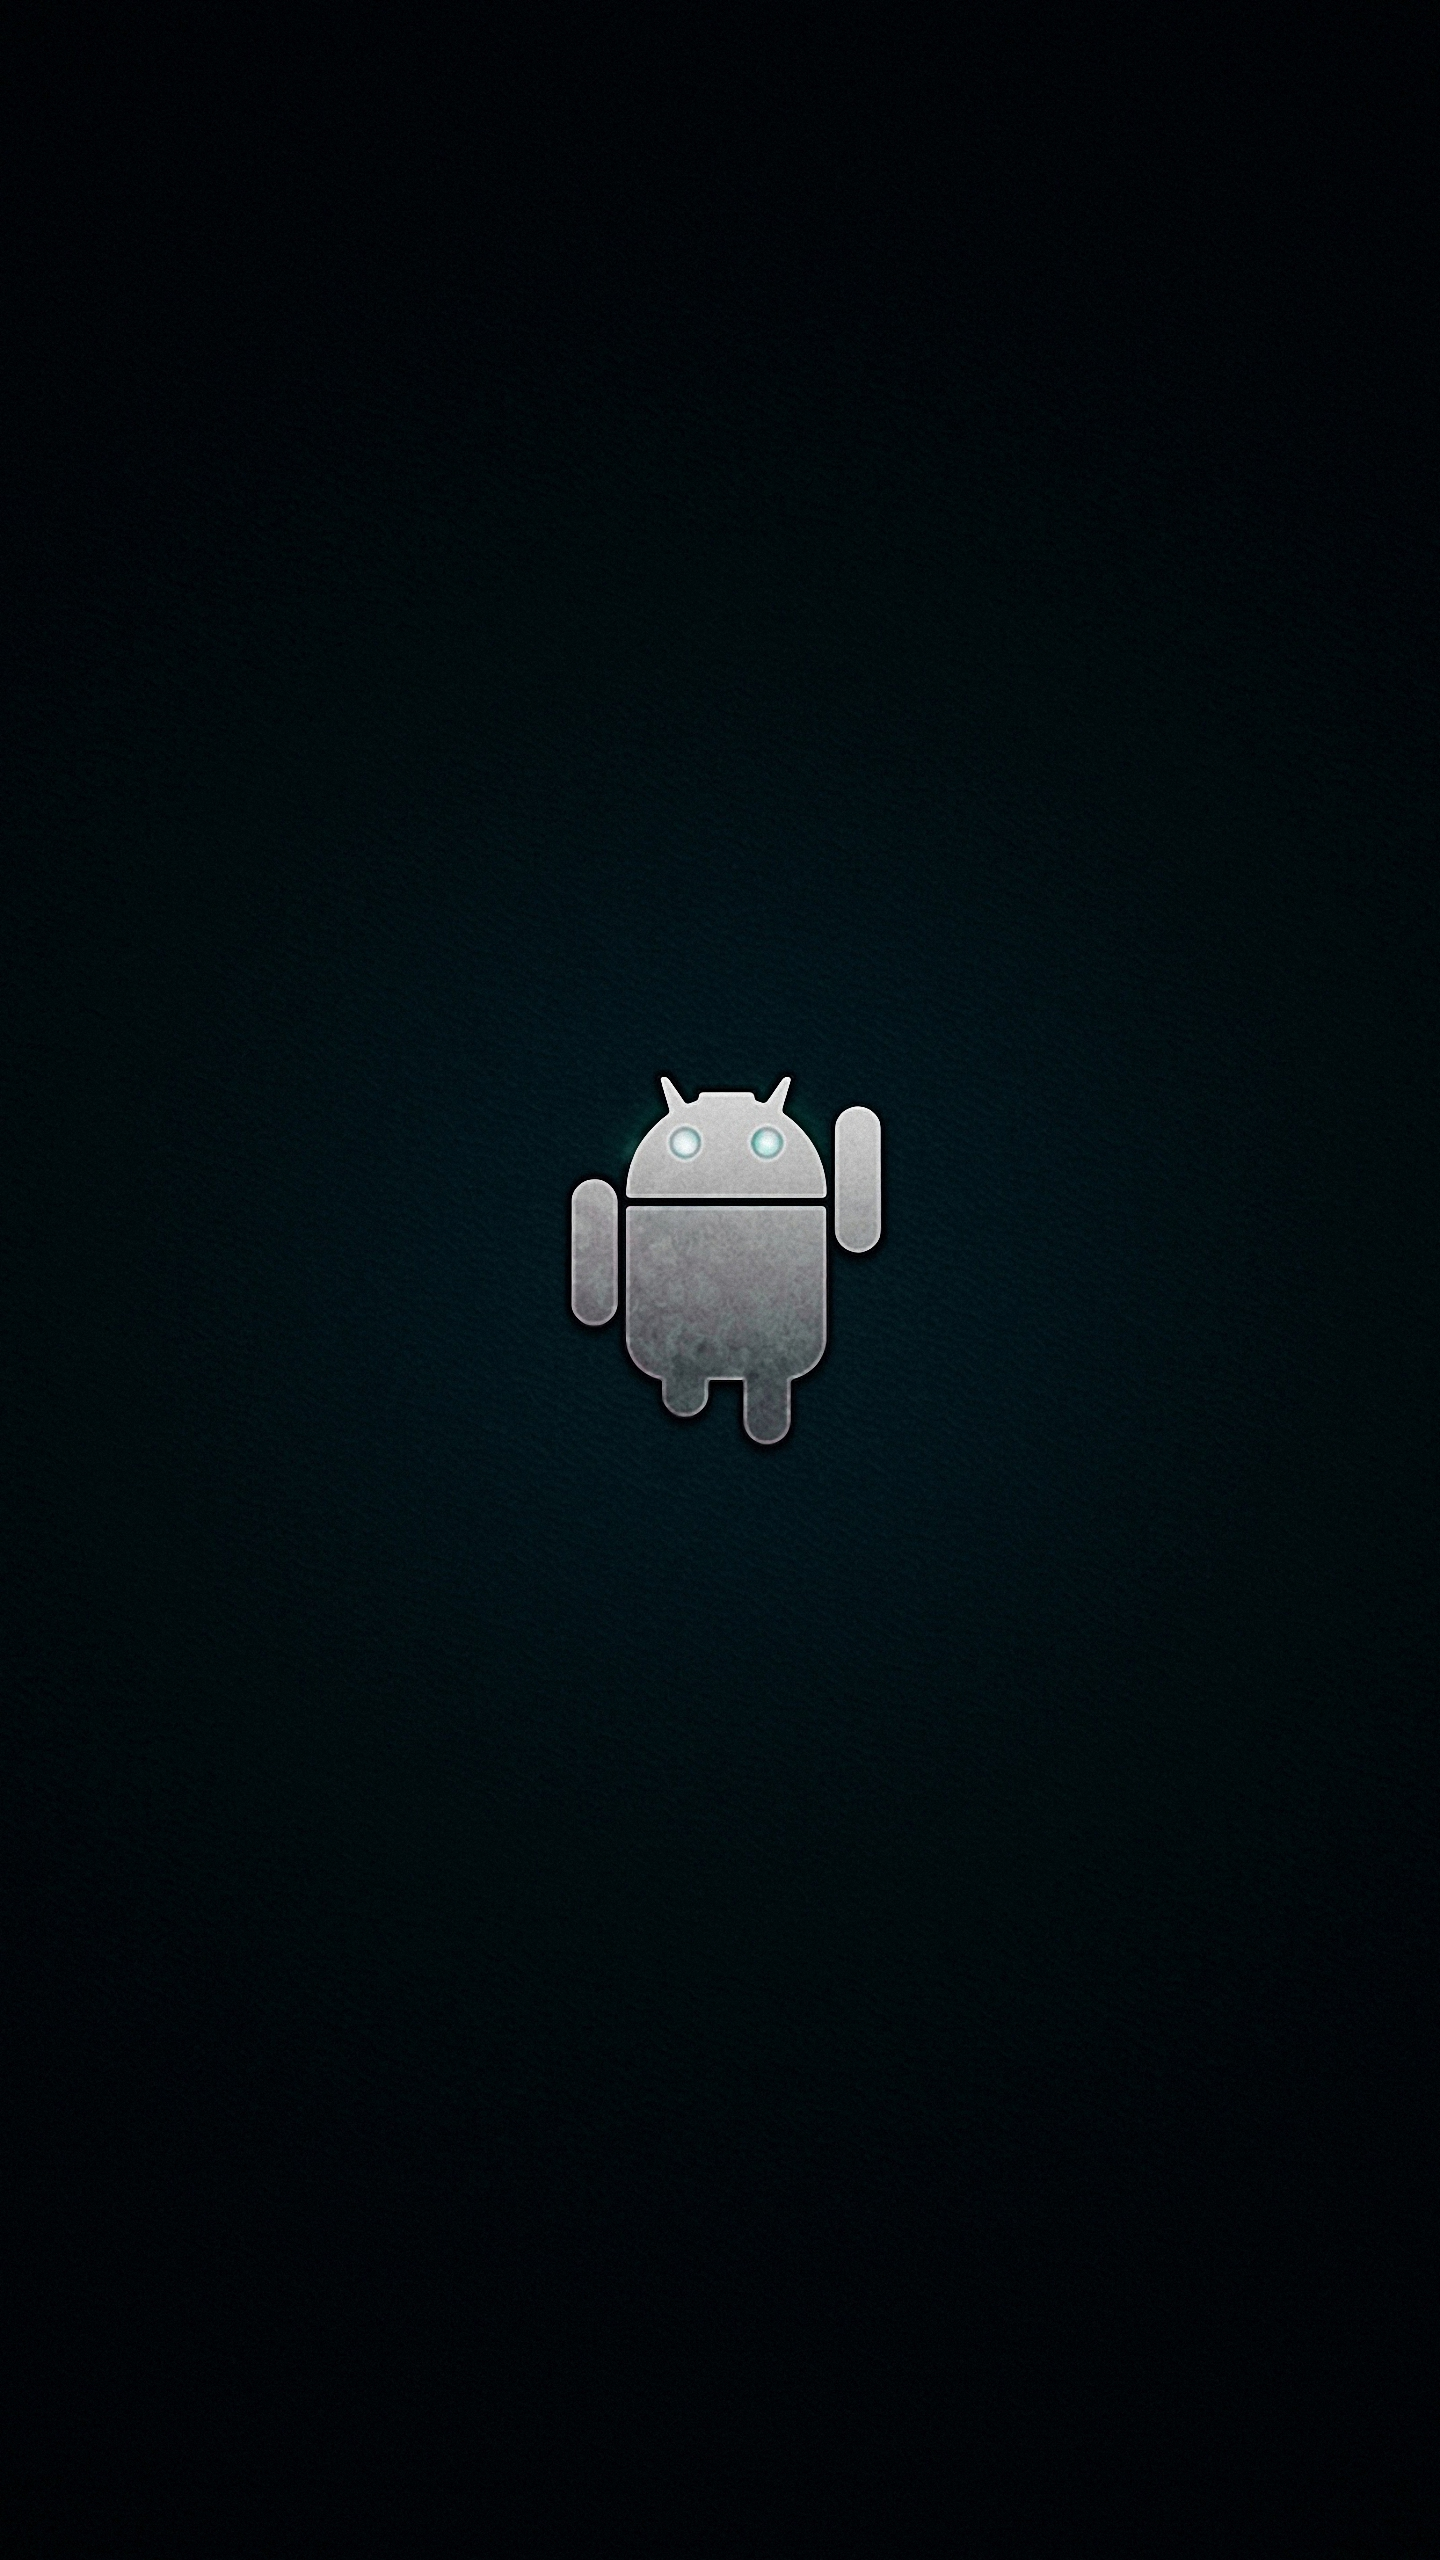 Simple Android Wallpapers